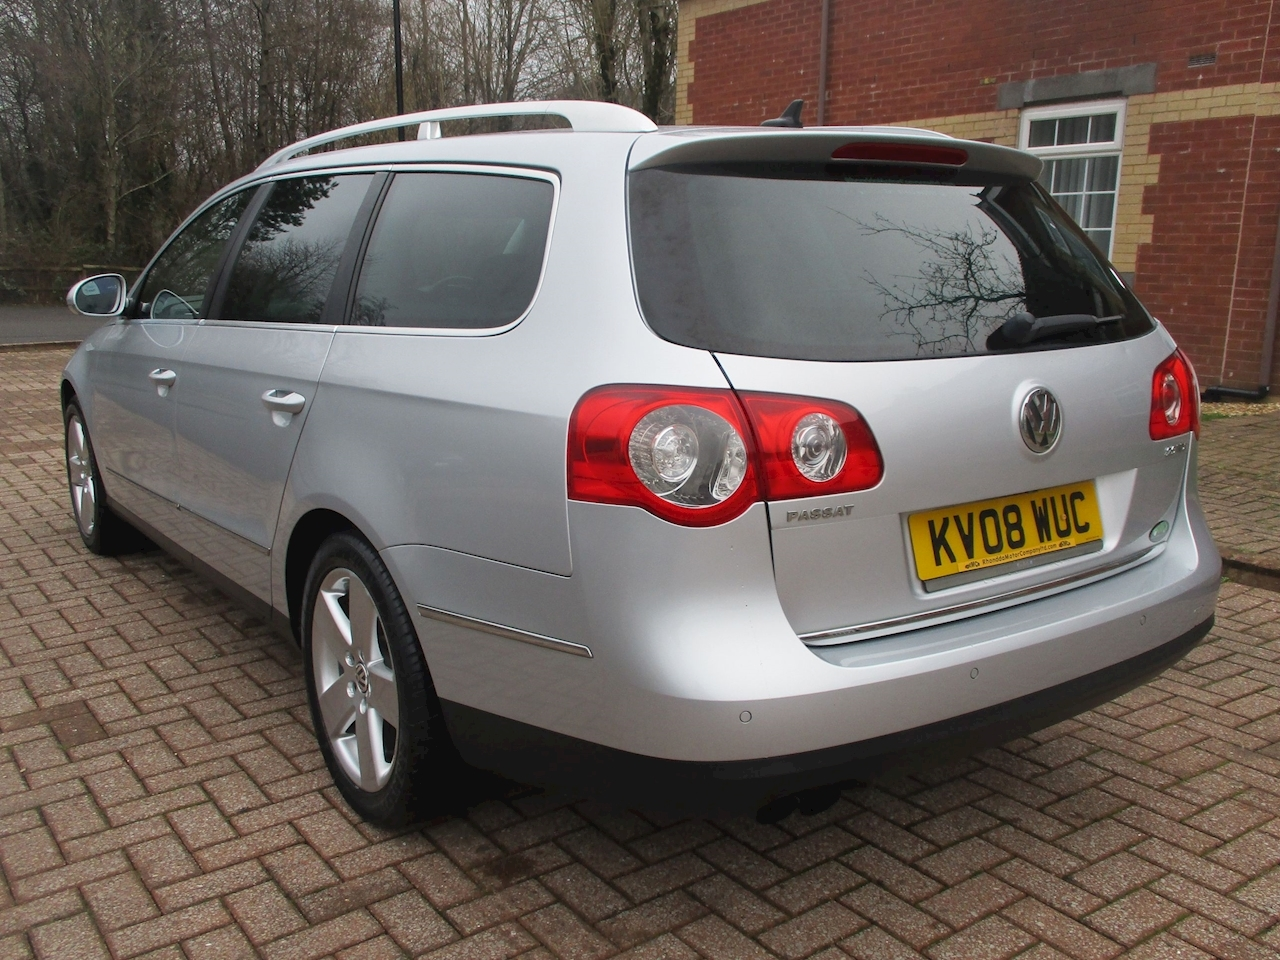 2.0 TDI SEL Estate 5dr Diesel Manual (173 g/km, 168 bhp)